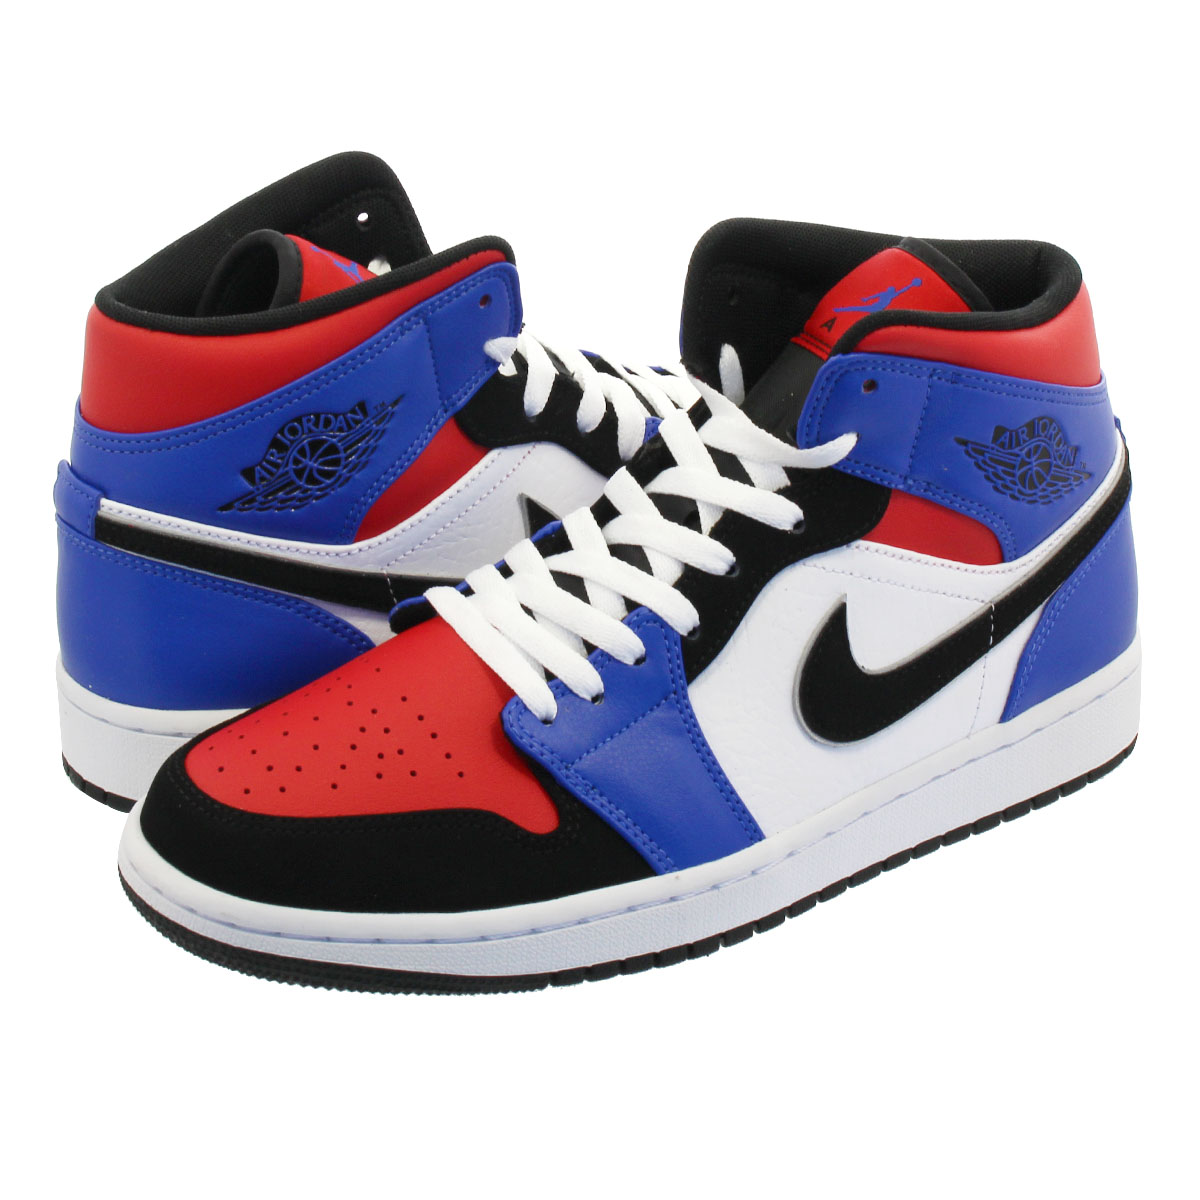 air jordan 1 red white blue